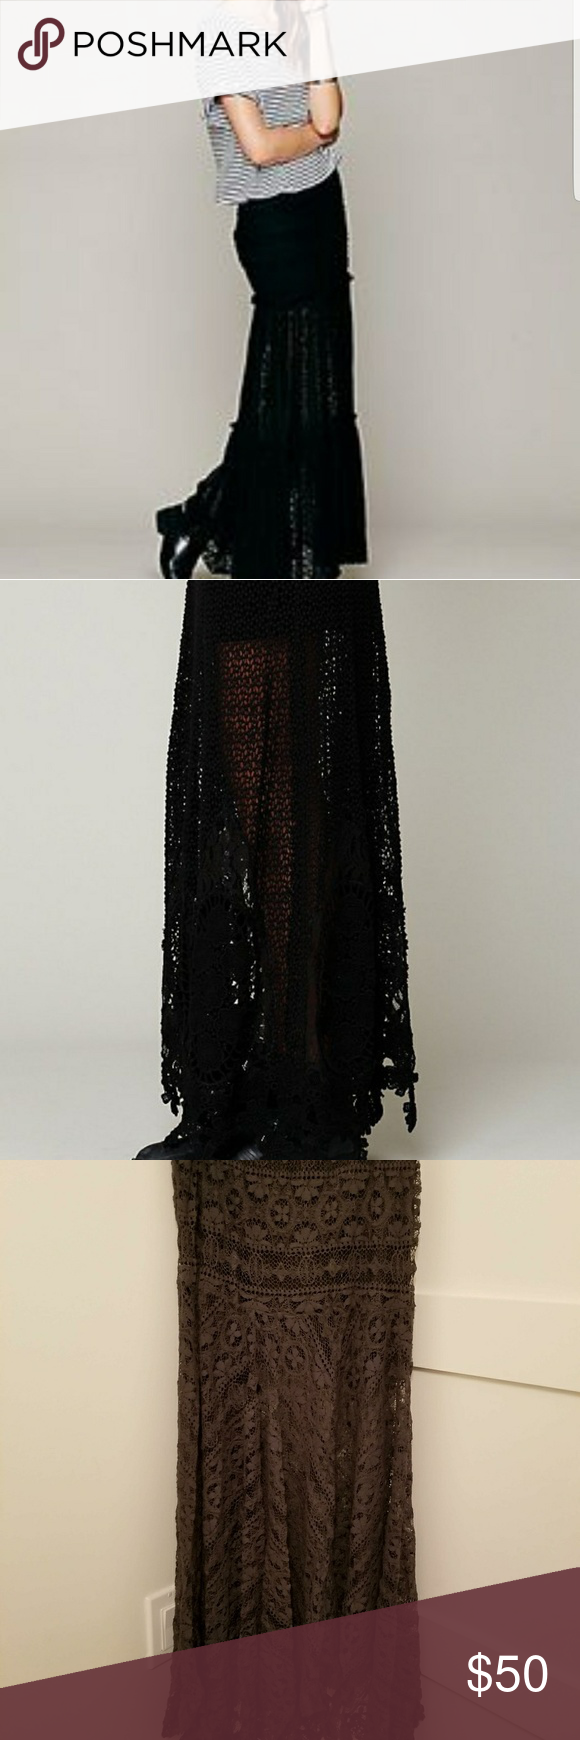 Black Long Lace Free People skirt Rated as one of pinterest best black lace skirts, free people skirt, in great shape, as you can see works well with little booties, casual or dress it up. Super fun skirt. Short slip underneath so a little skin shows thru. Elastic waist size small Free People Skirts Maxi